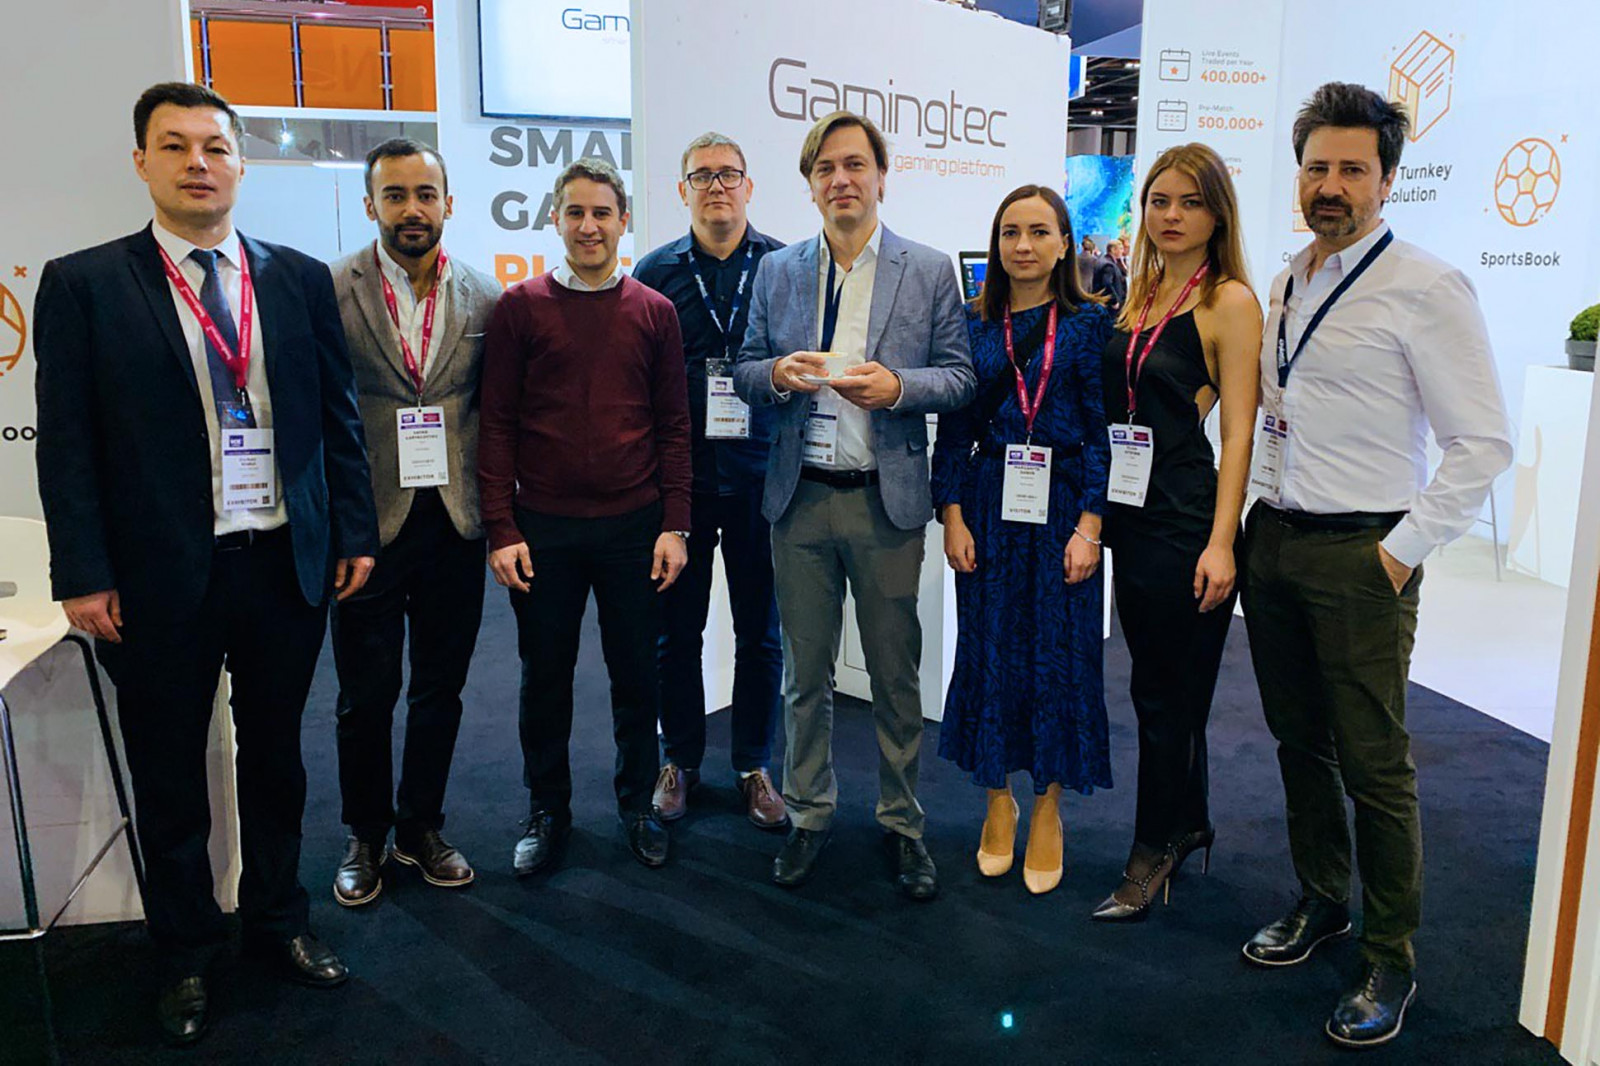 Gamingtec Showcases its Full Turnkey Solution at ICE 2020